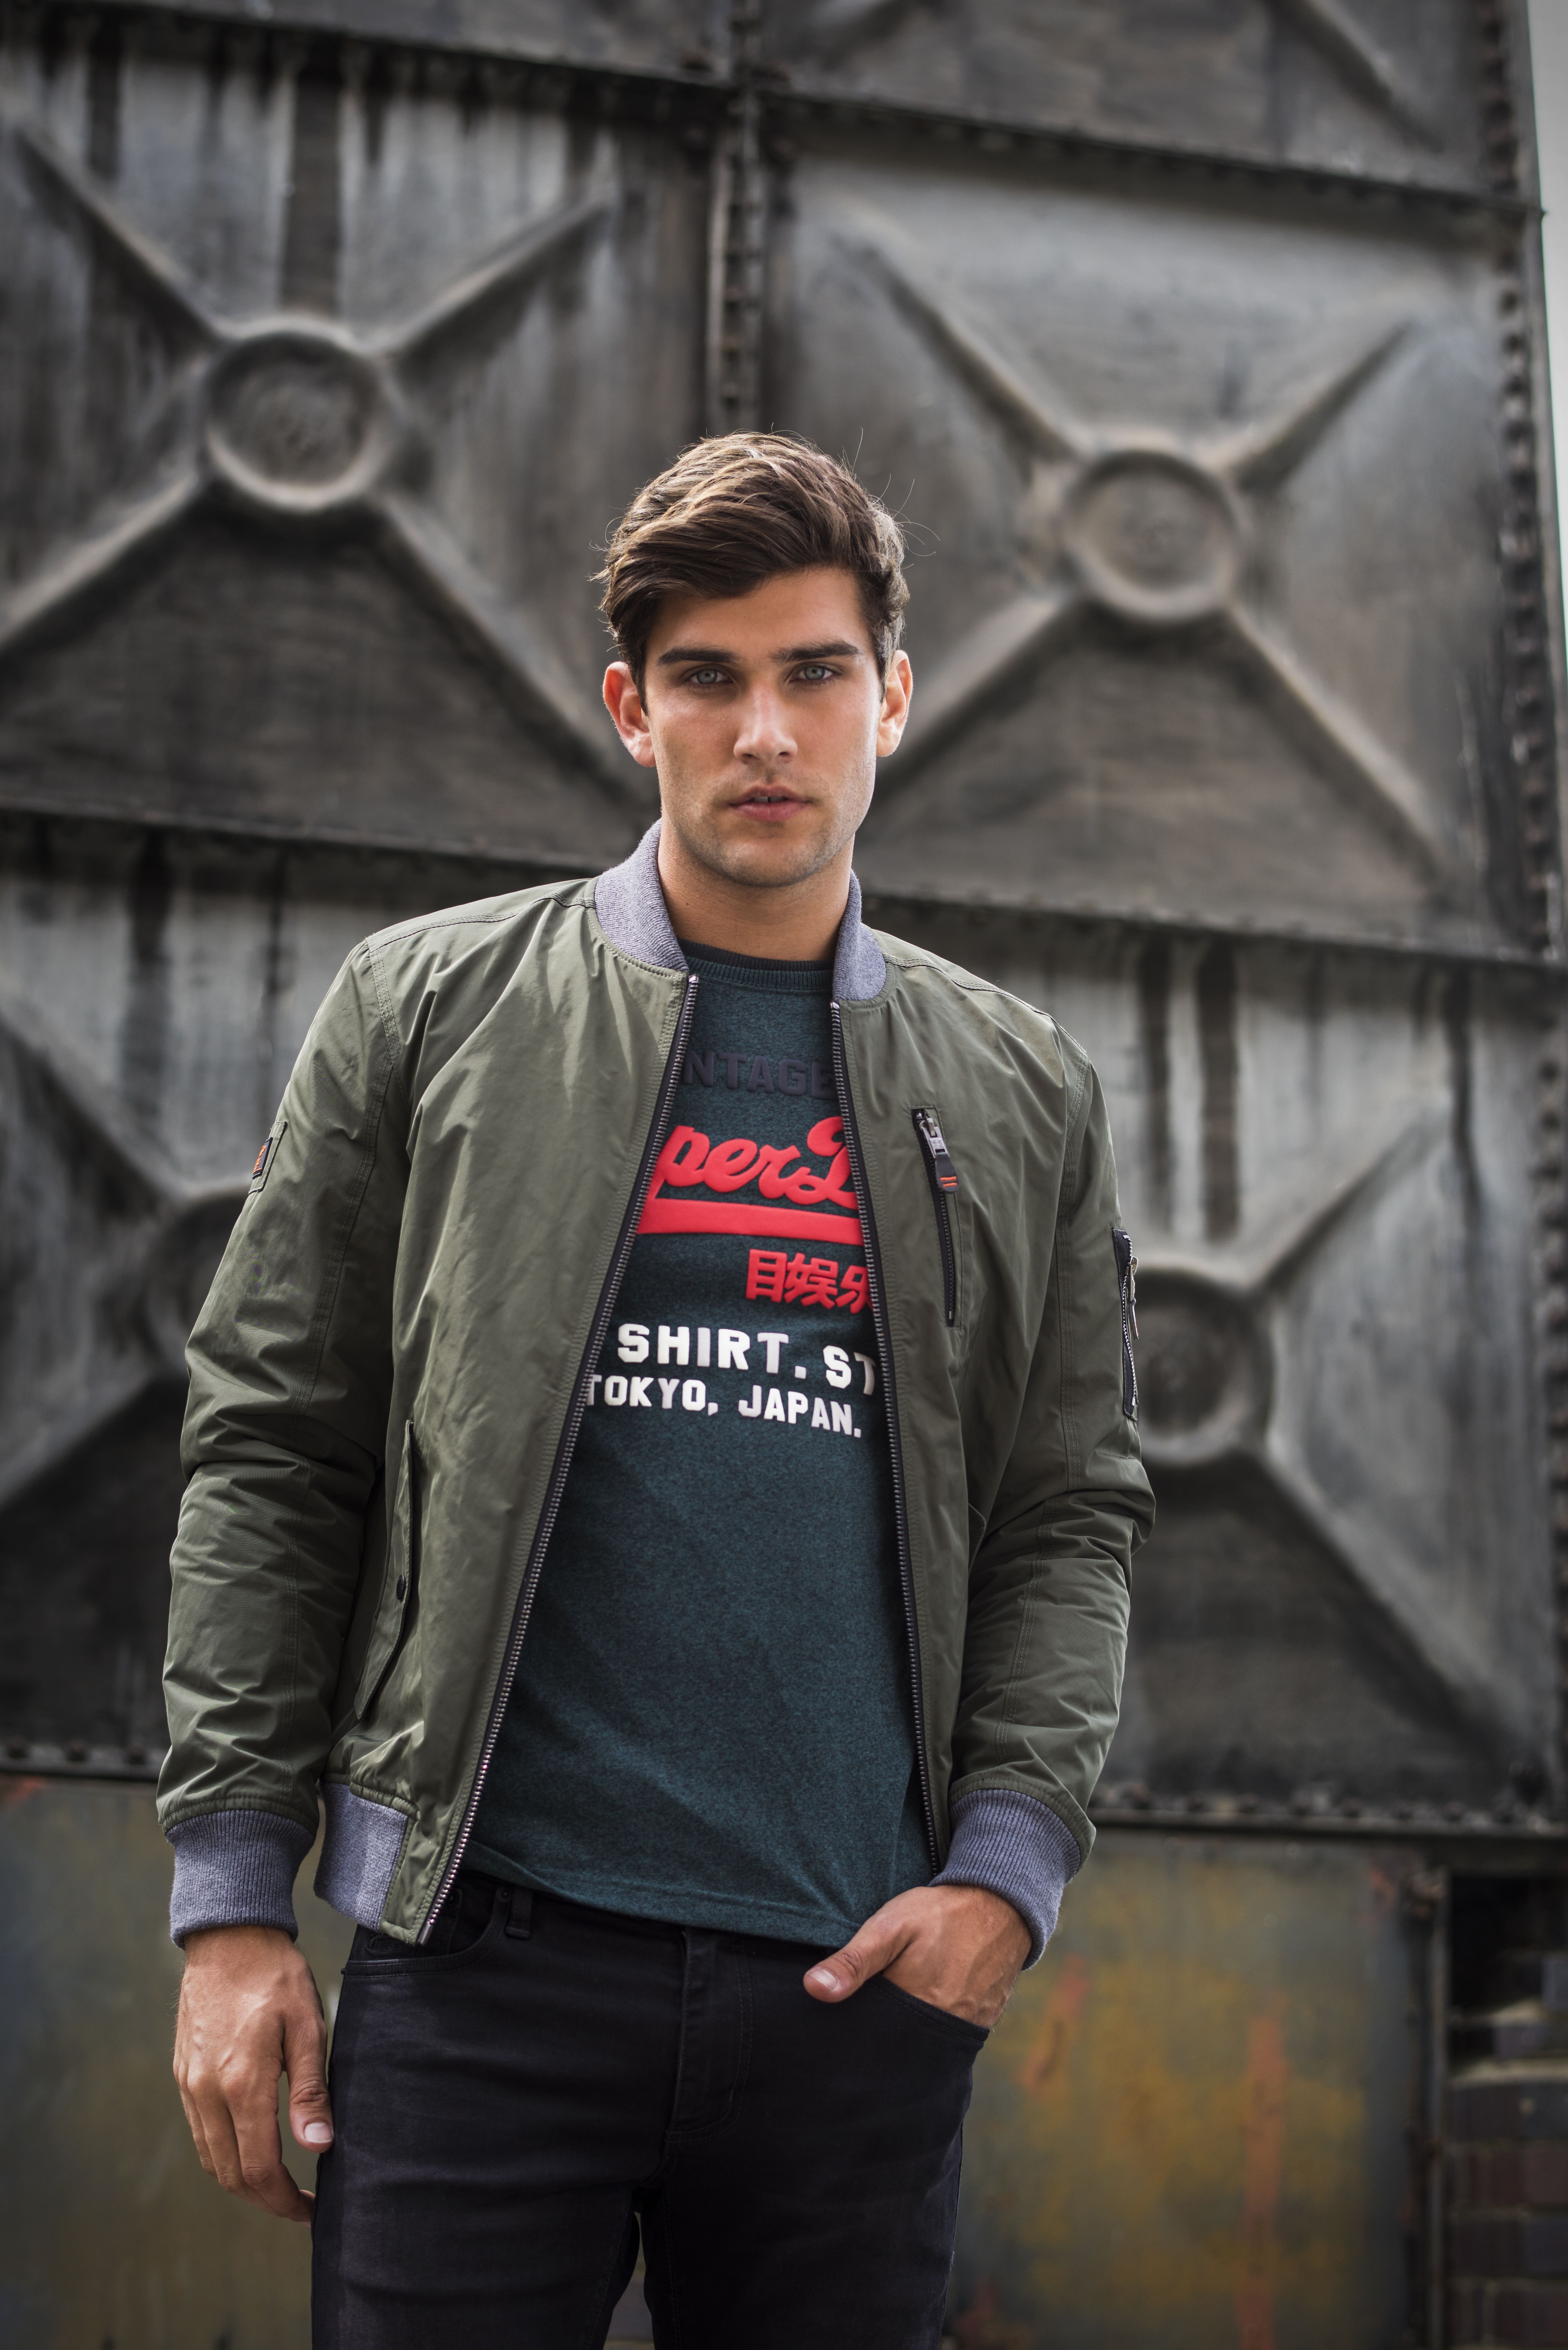 The Coolest Classic To Get You Through The Season Mens Summer Outfits Business Casual Men Mens Fashion Rugged [ 7360 x 4912 Pixel ]